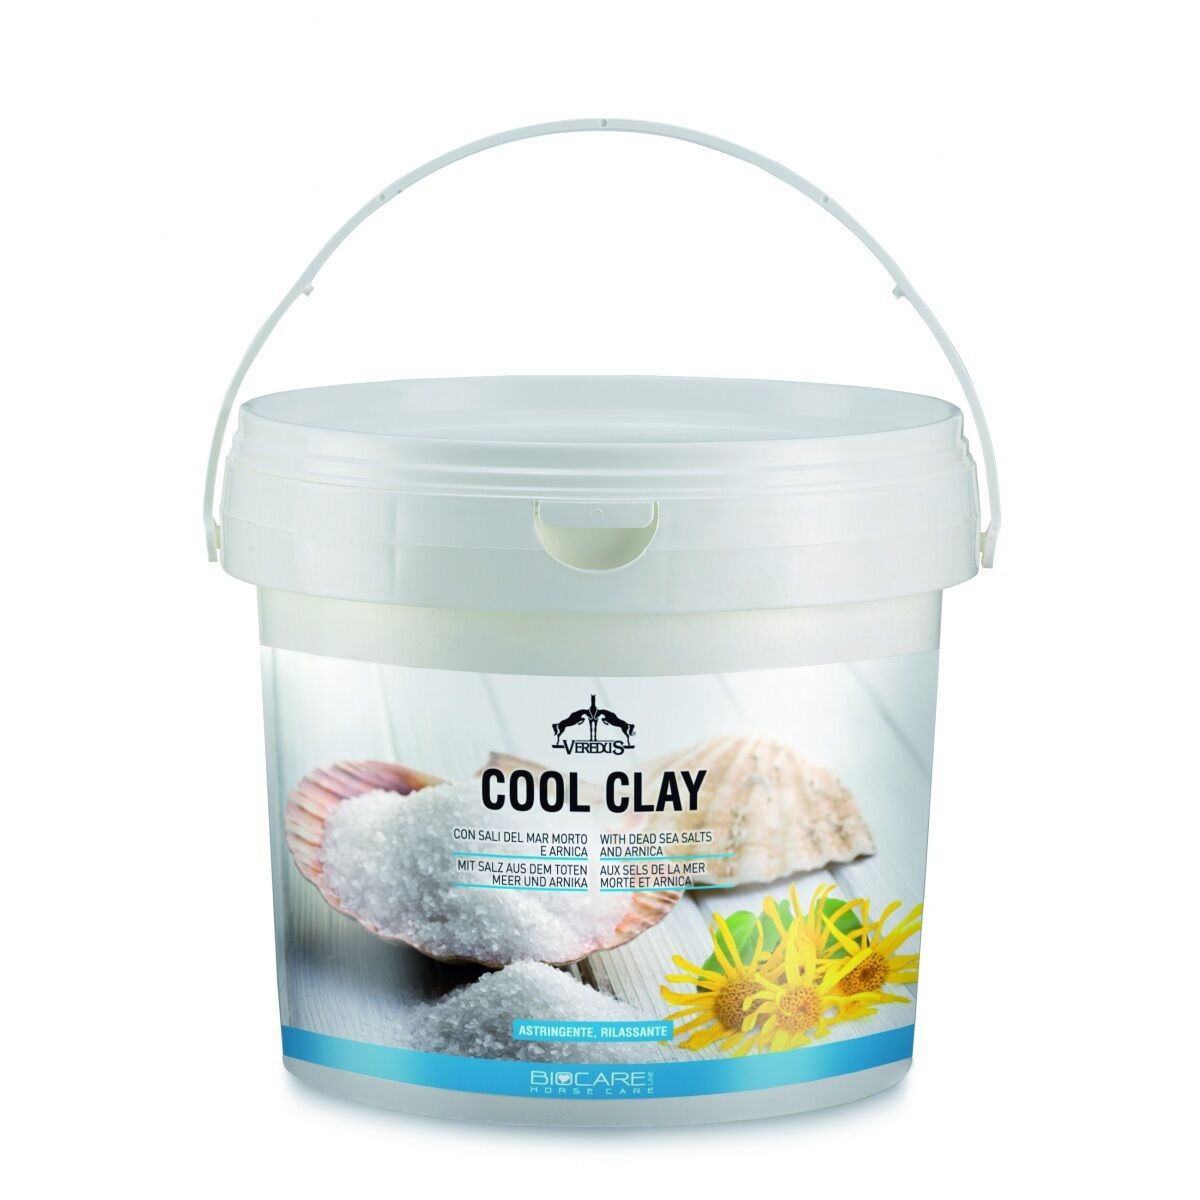 Veredus Bio Care COOL CLAY Arnica Sea Salts Recovery Limbs Legs Muscles Cooling